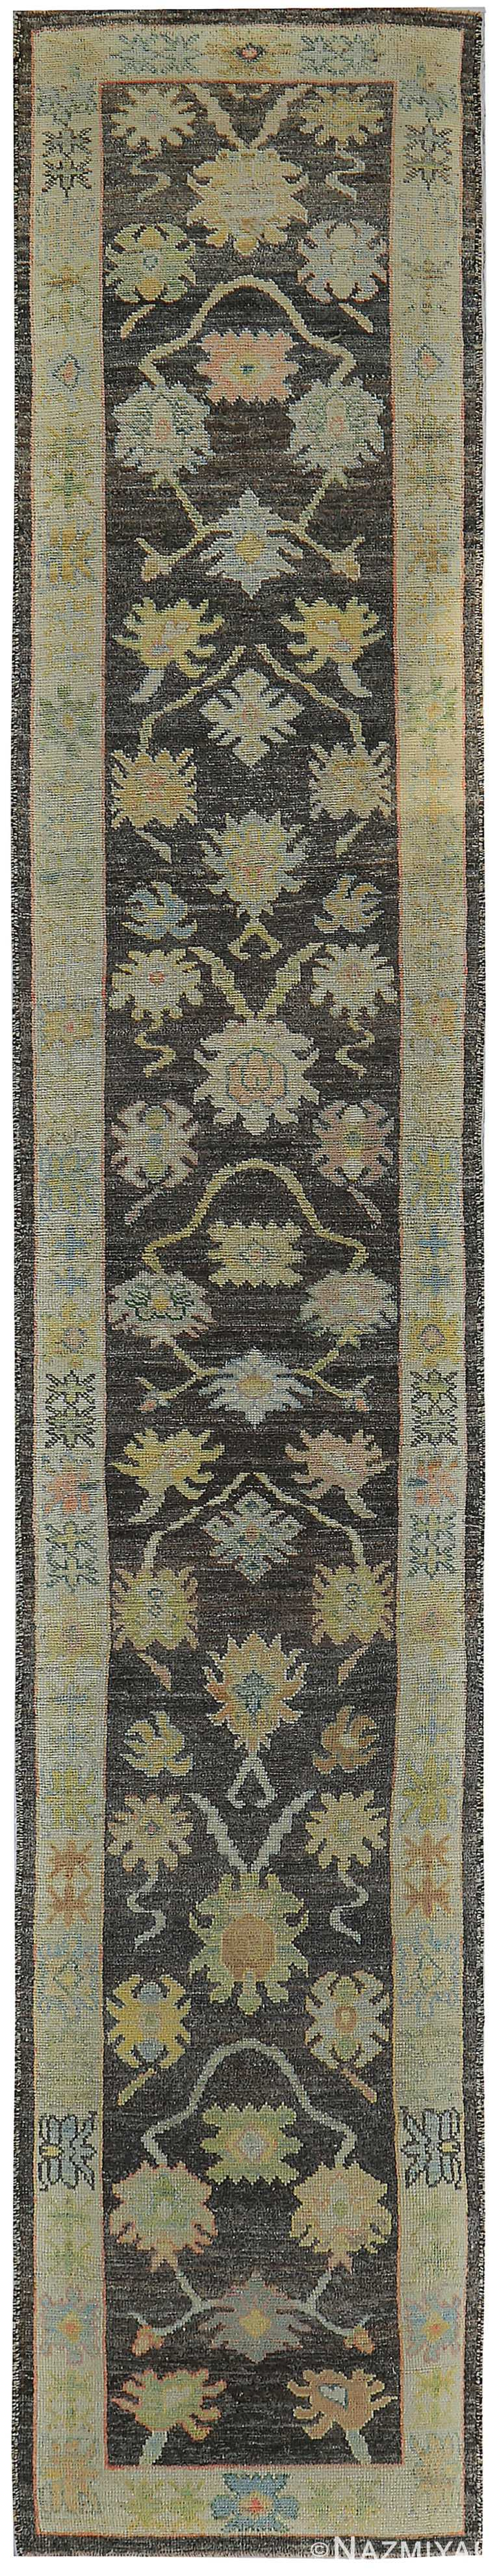 Charcoal Background Floral Turkish Oushak Runner Rug 60419 by Nazmiyal NYC